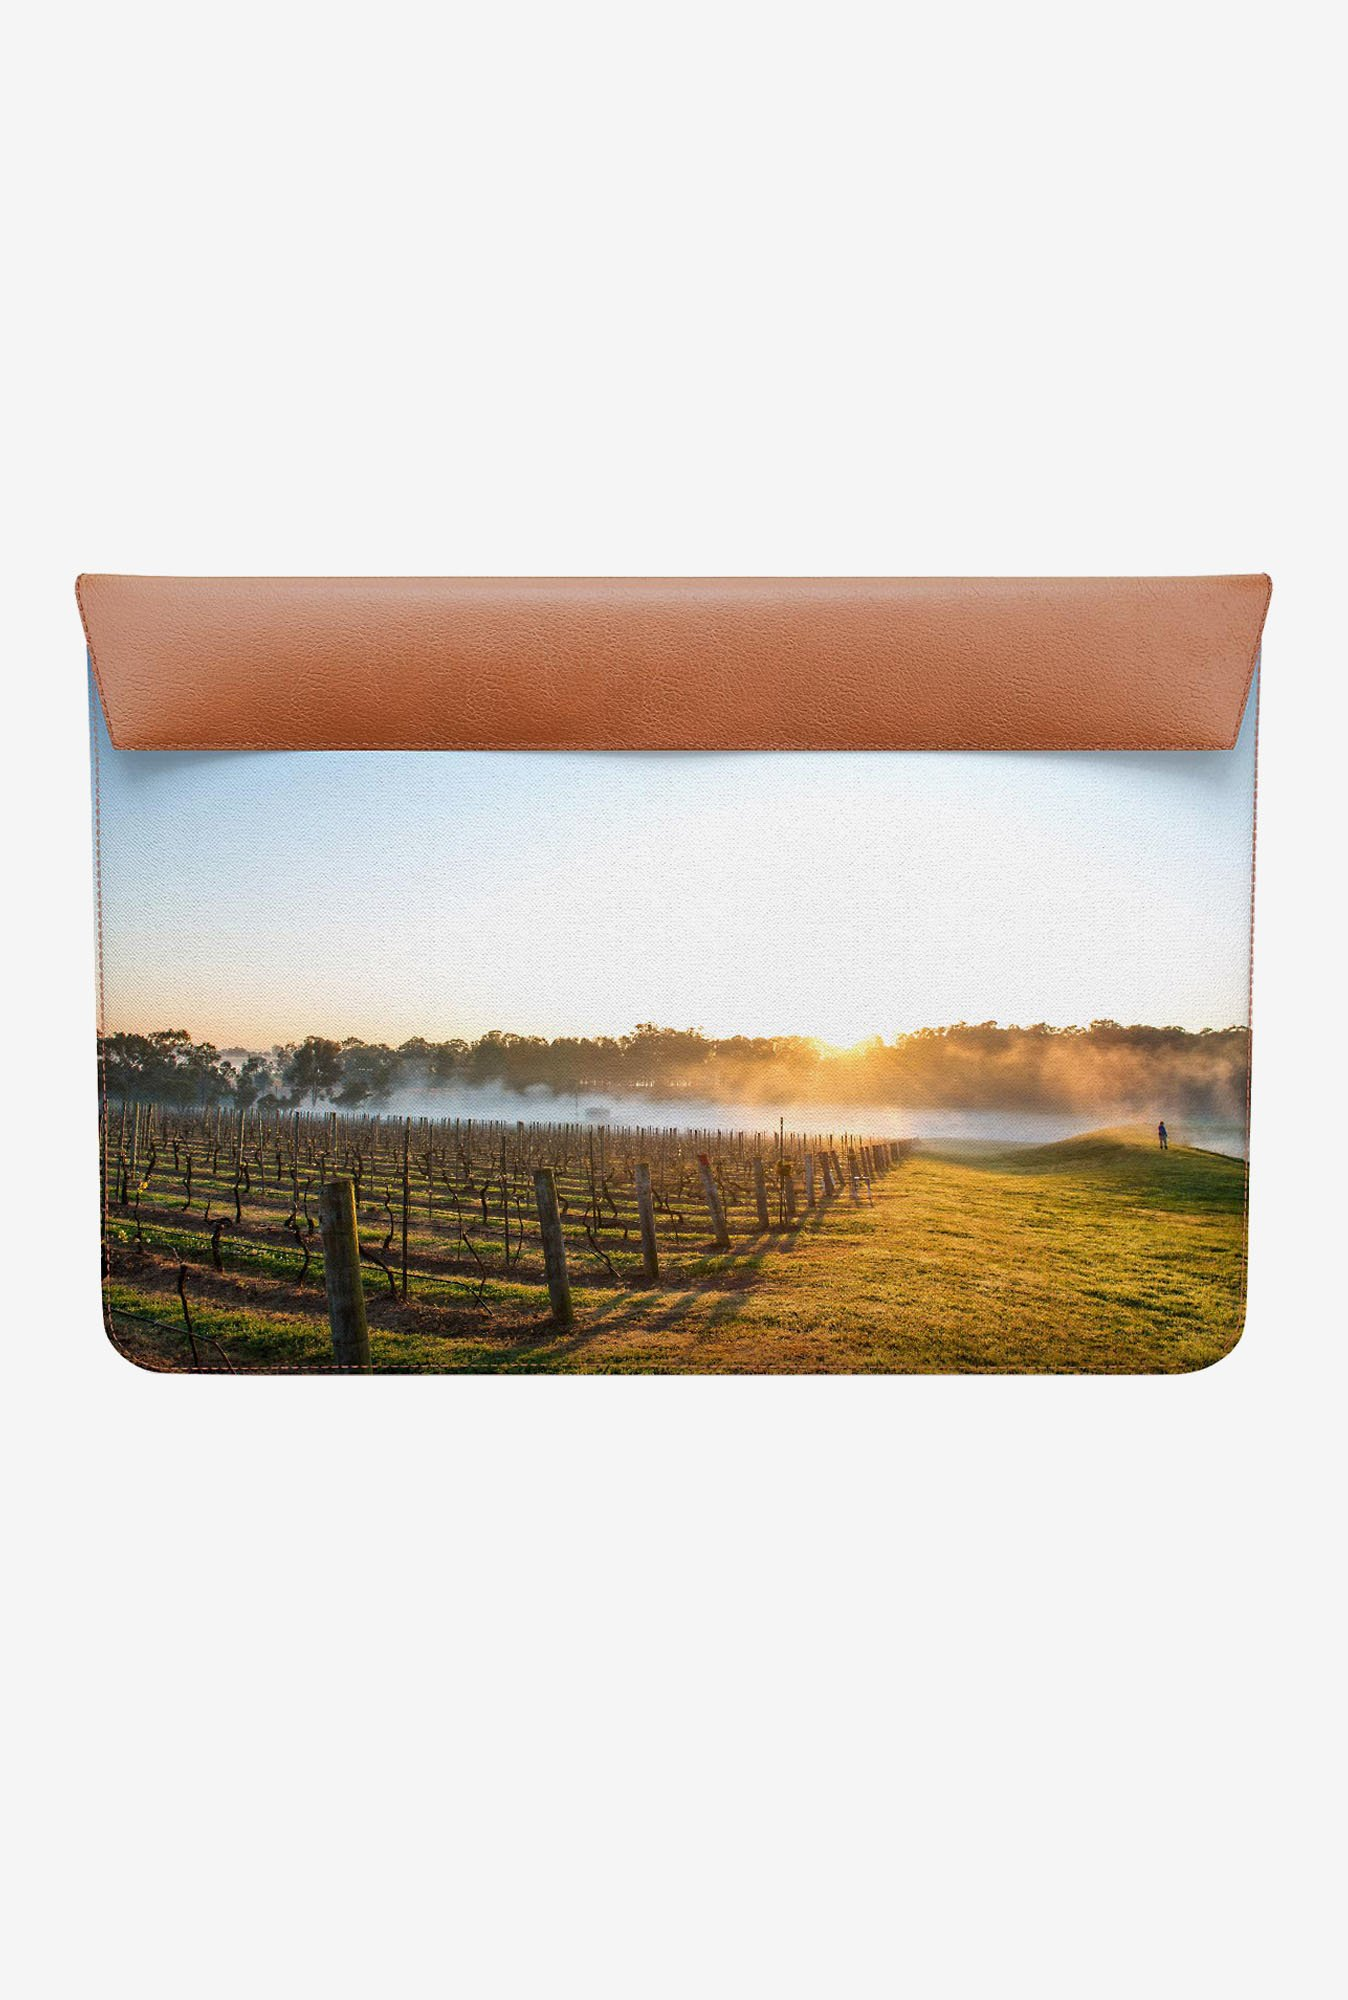 DailyObjects Misty Morning MacBook Air 11 Envelope Sleeve